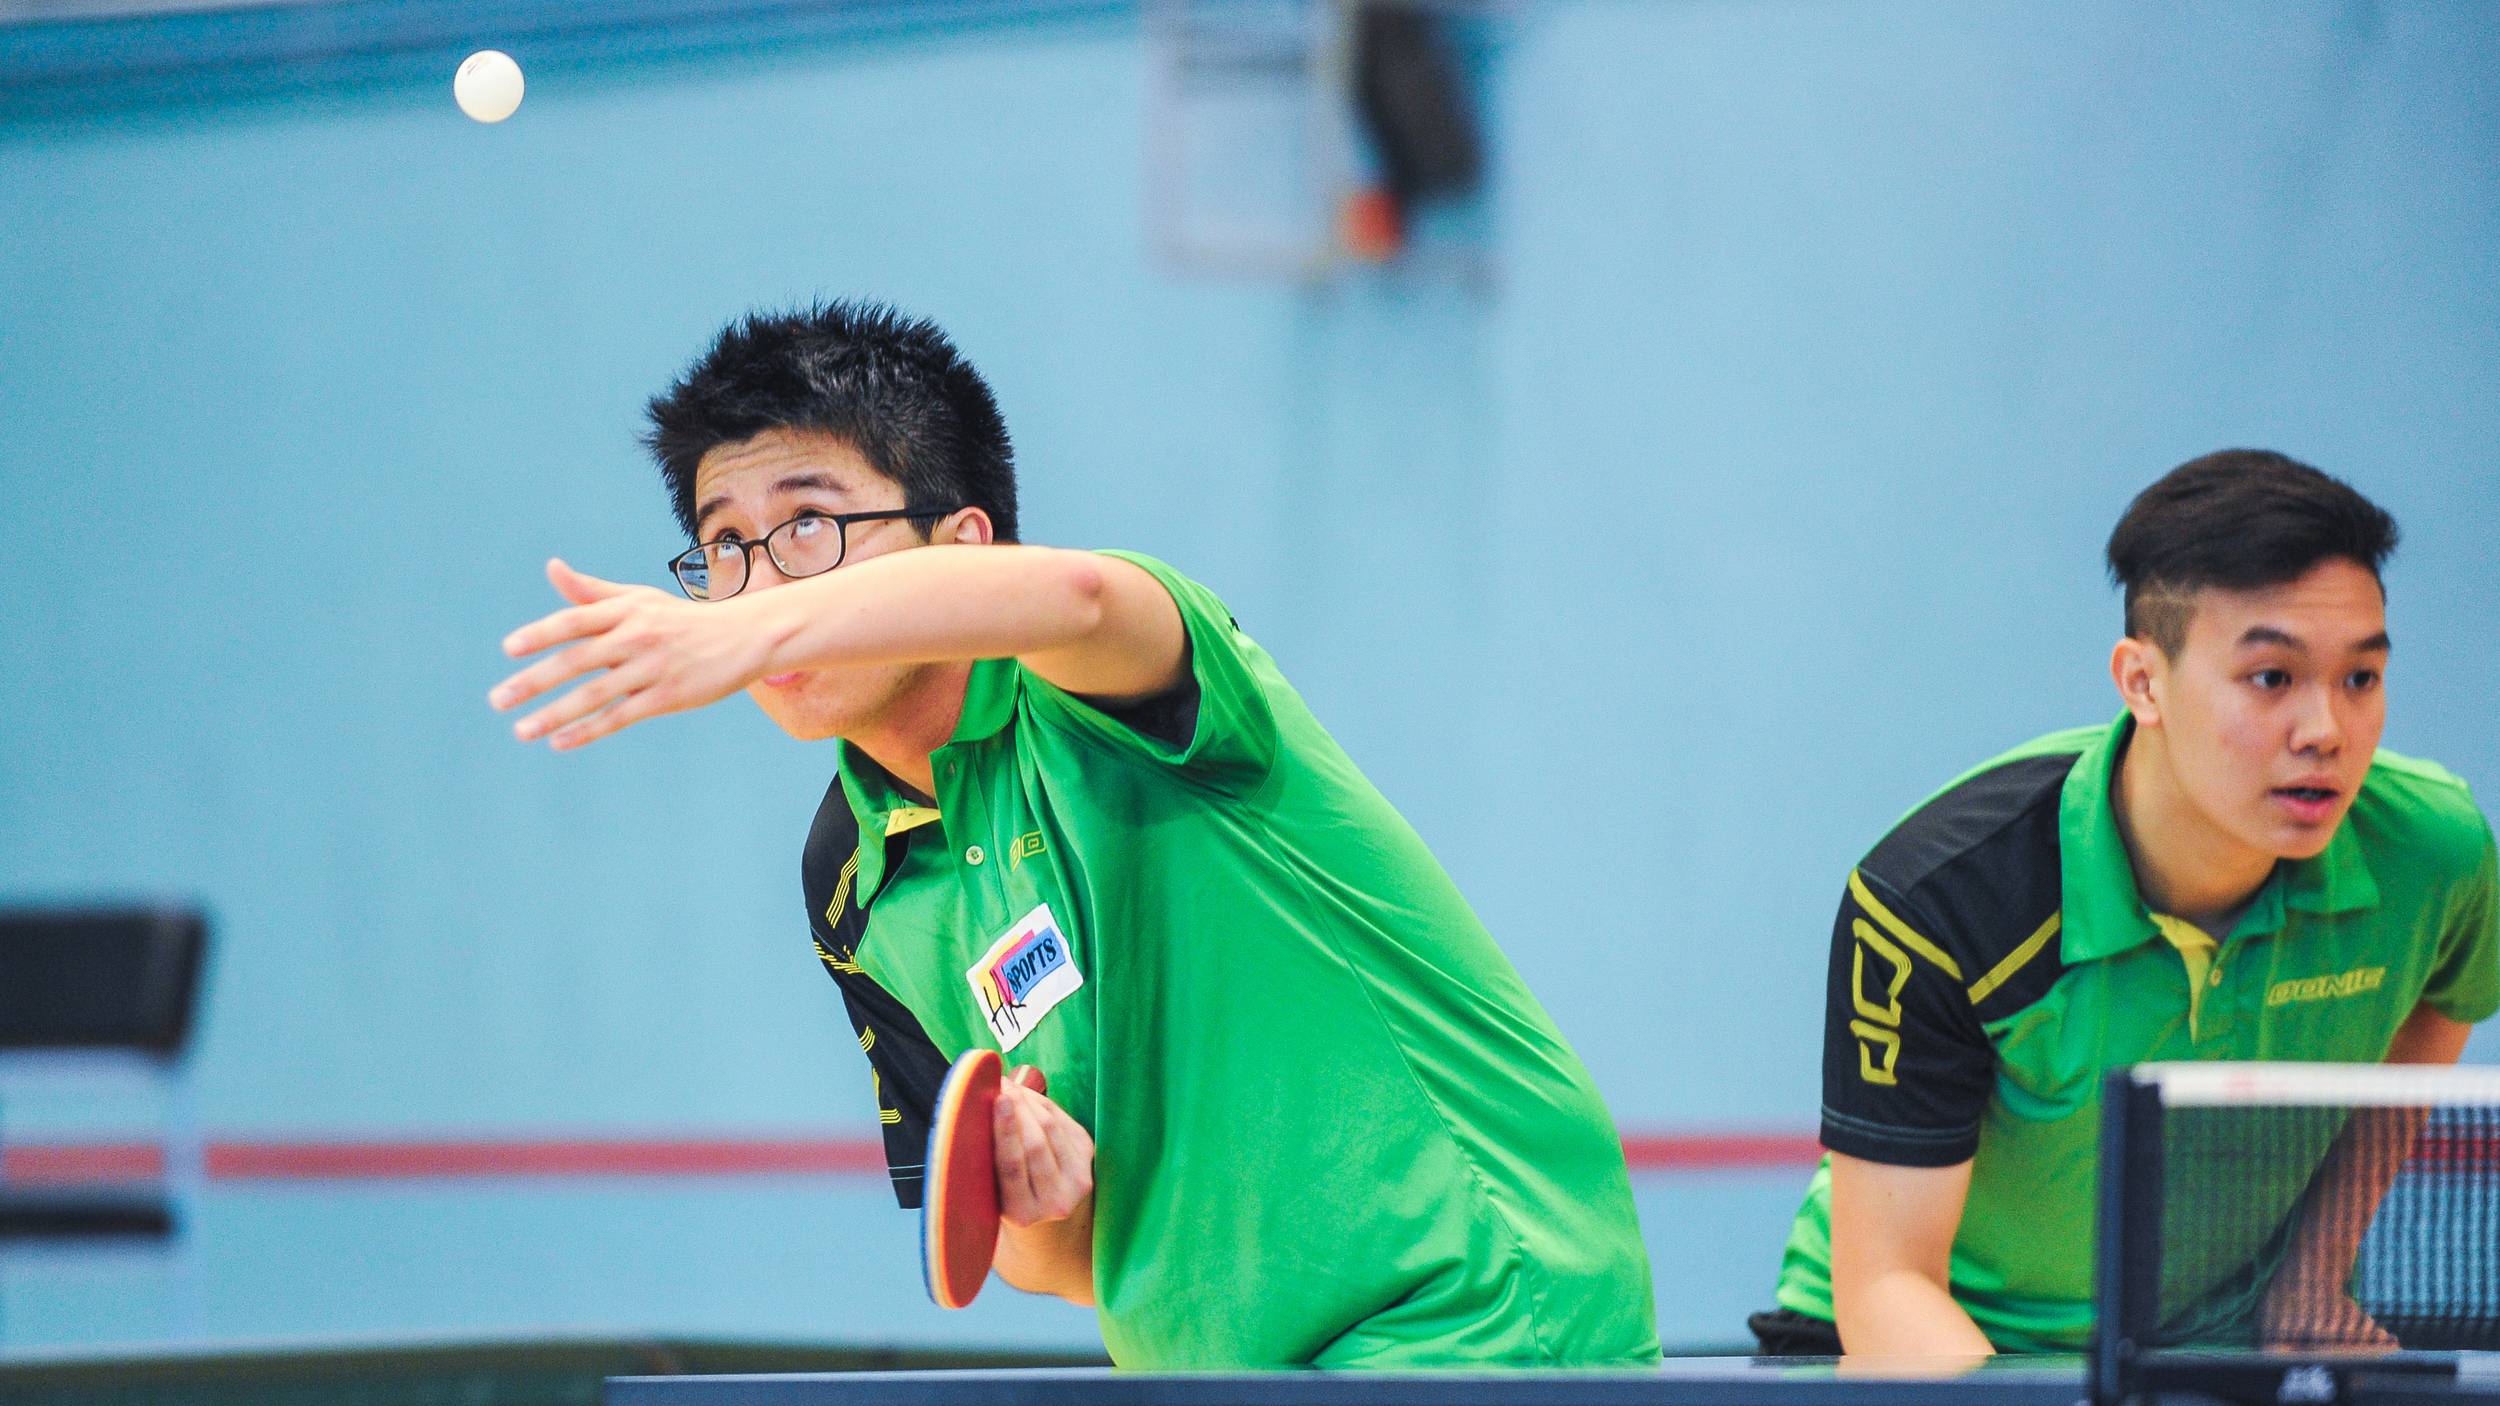 20150623-table-tennis-4.jpg